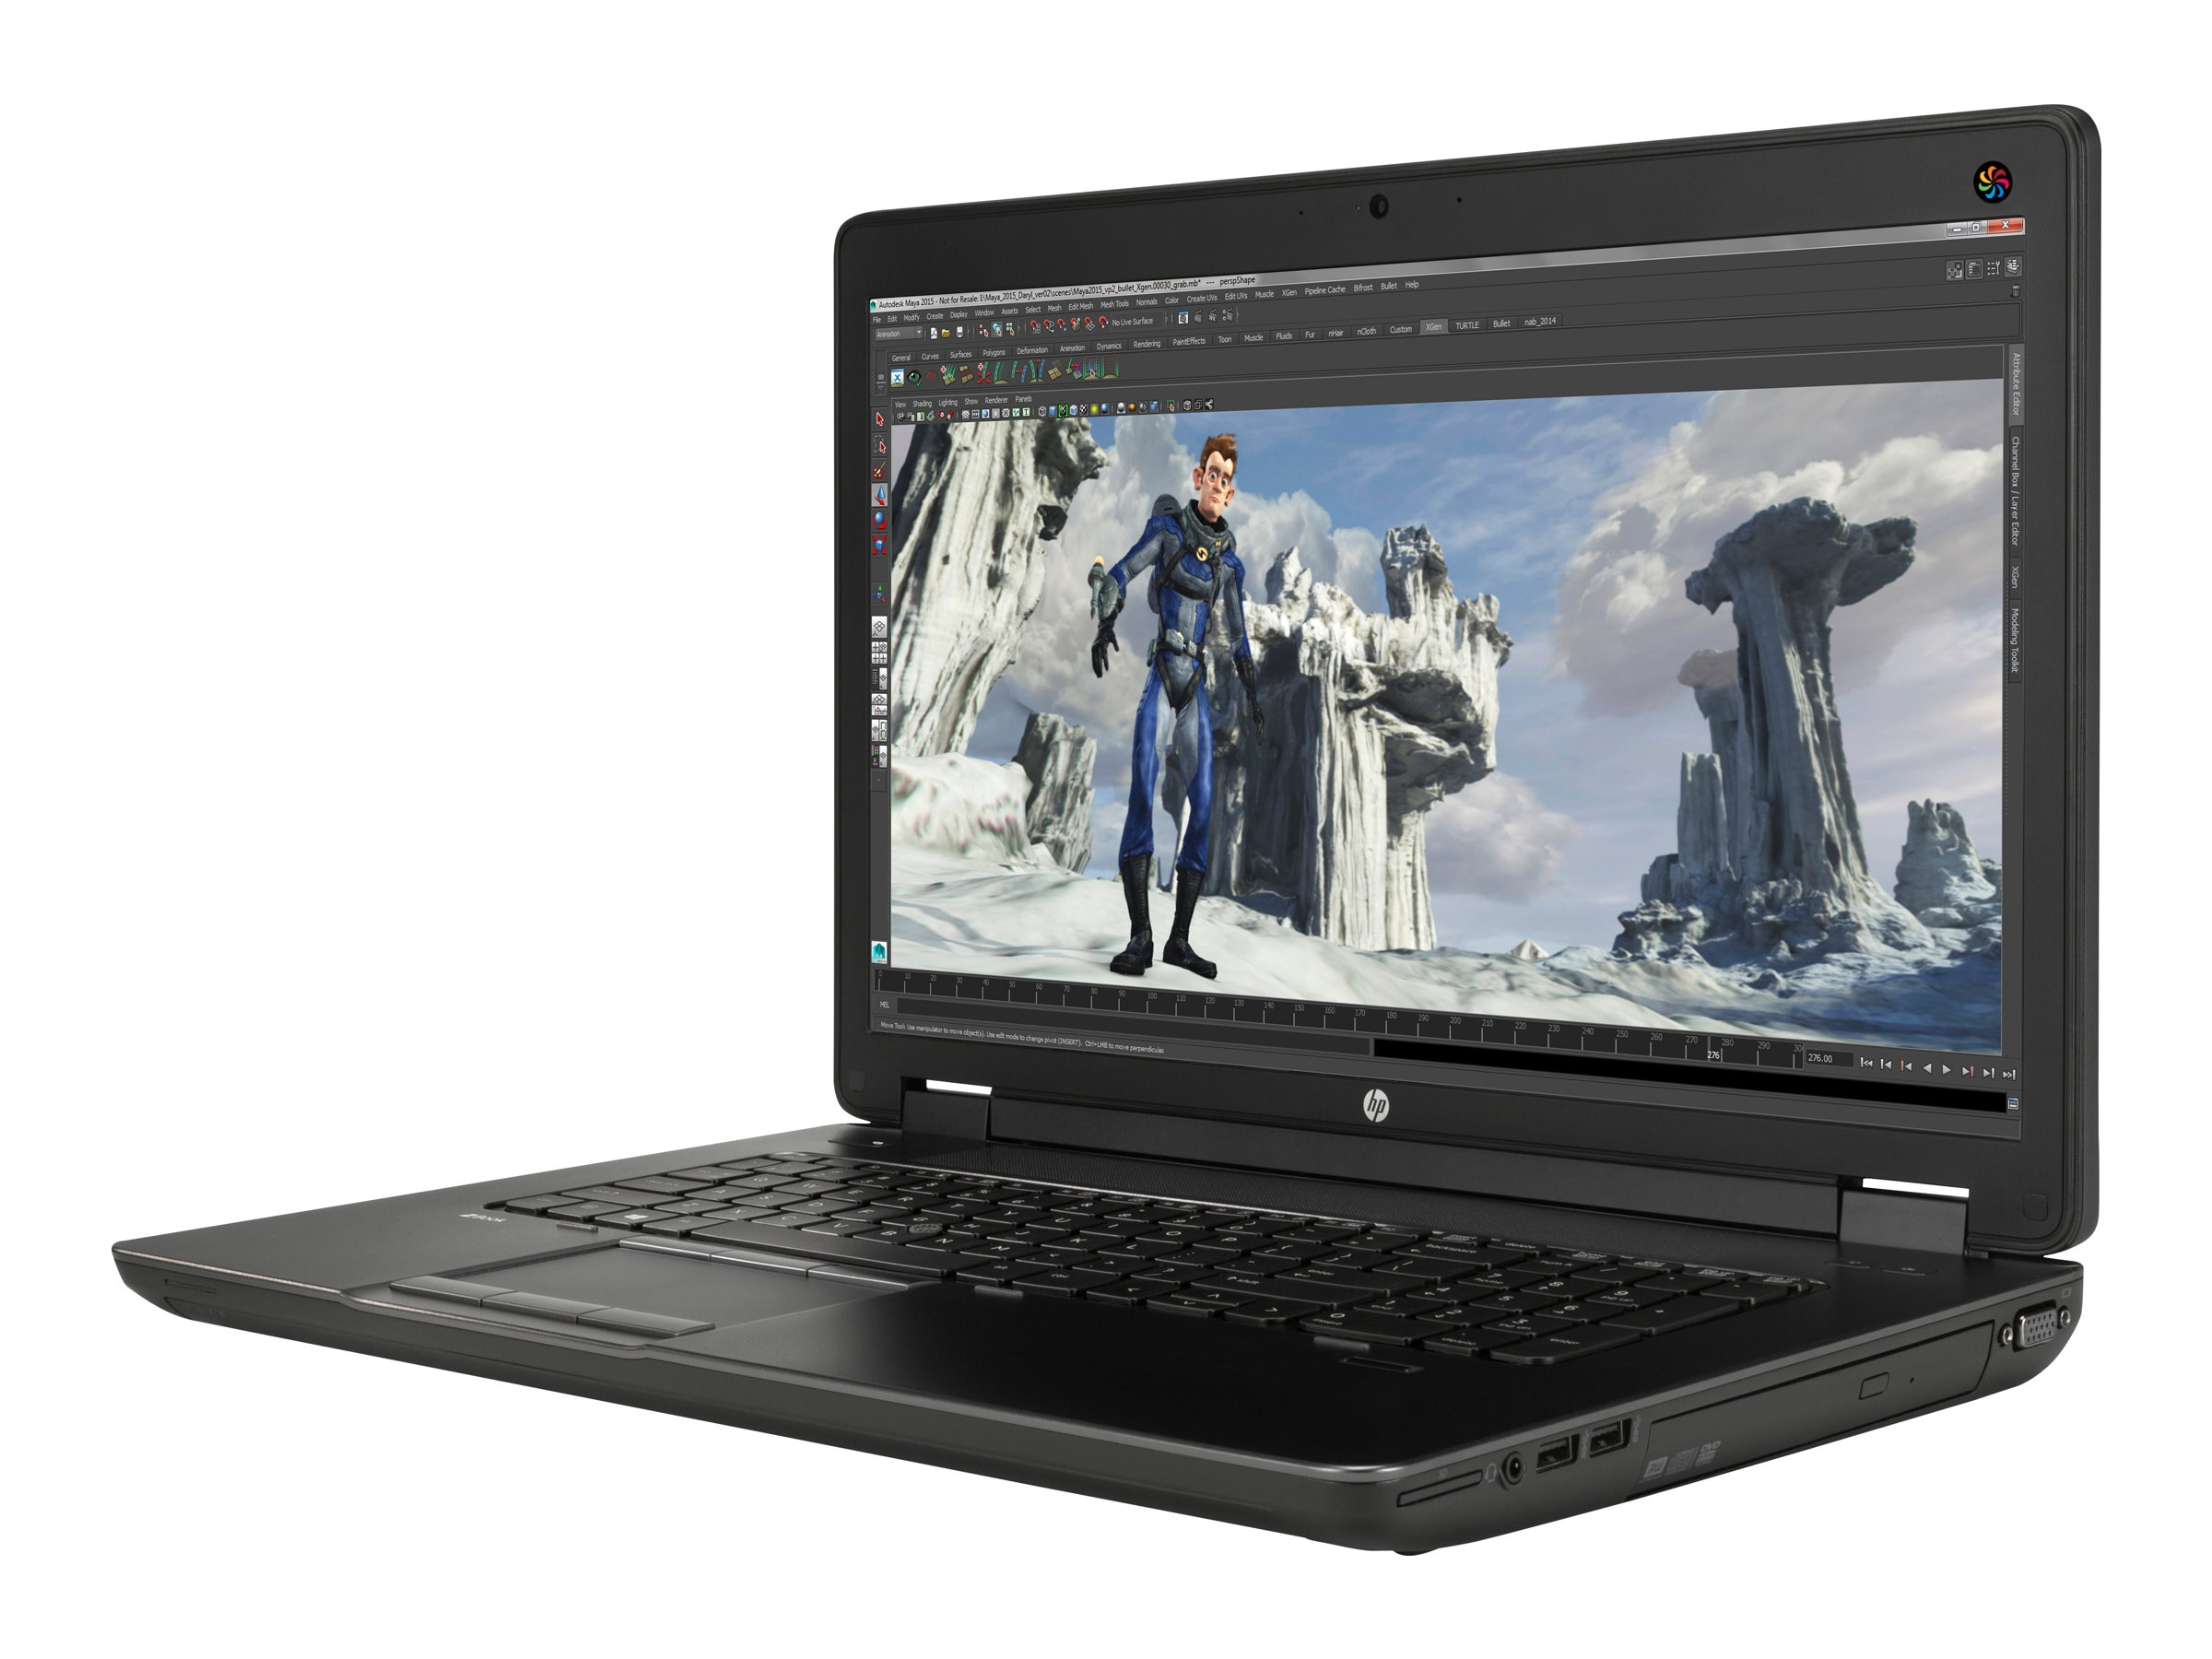 HP ZBook Core i7-4940MX 4GB 500GB 17.3